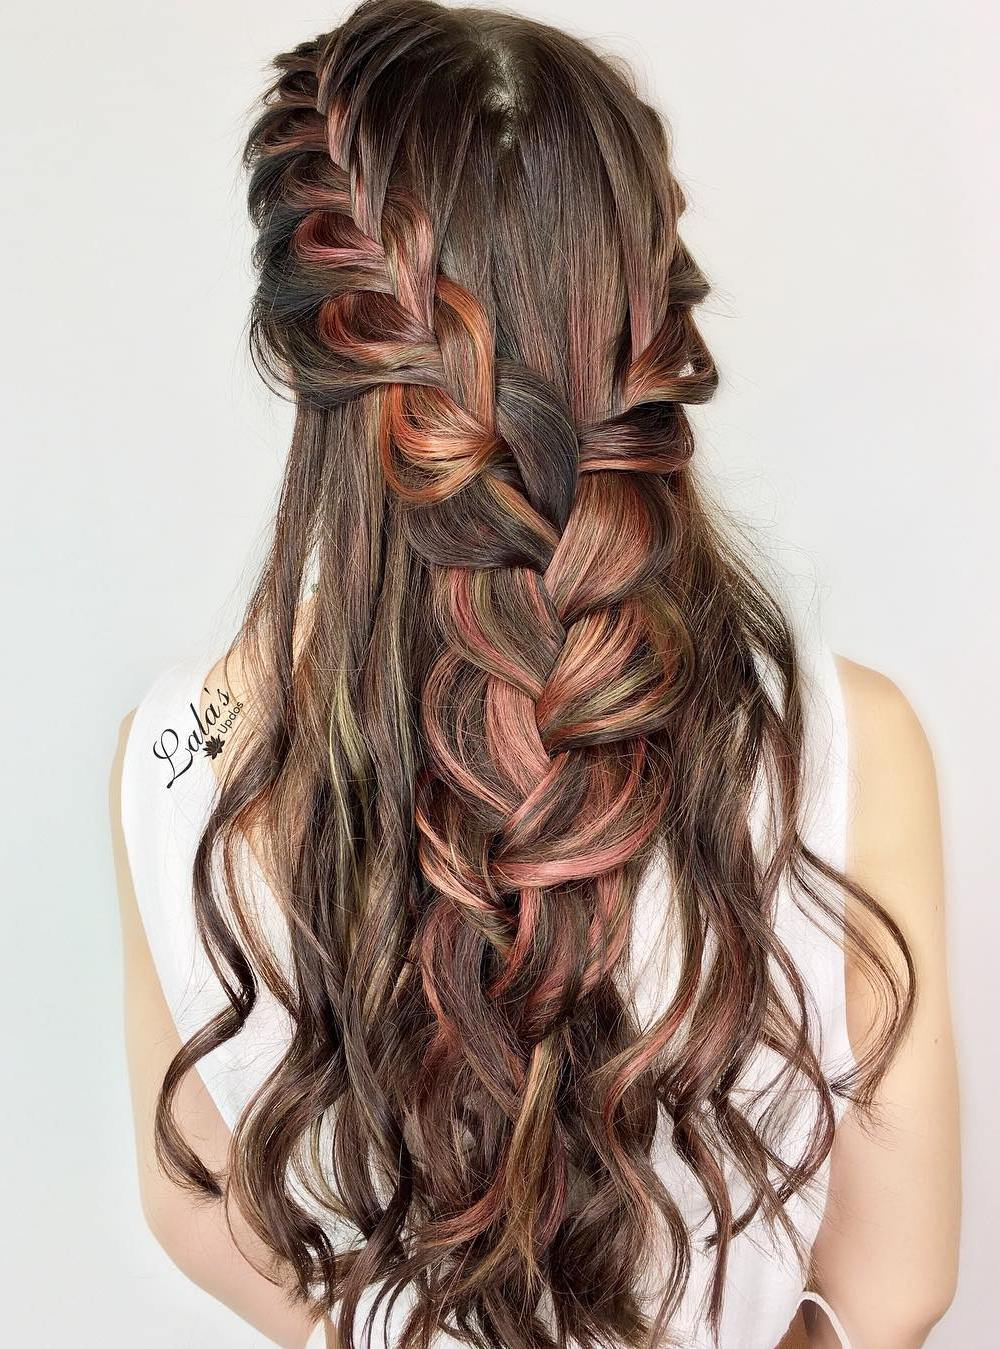 Superior Two Braids Into One Half Up Hairstyle